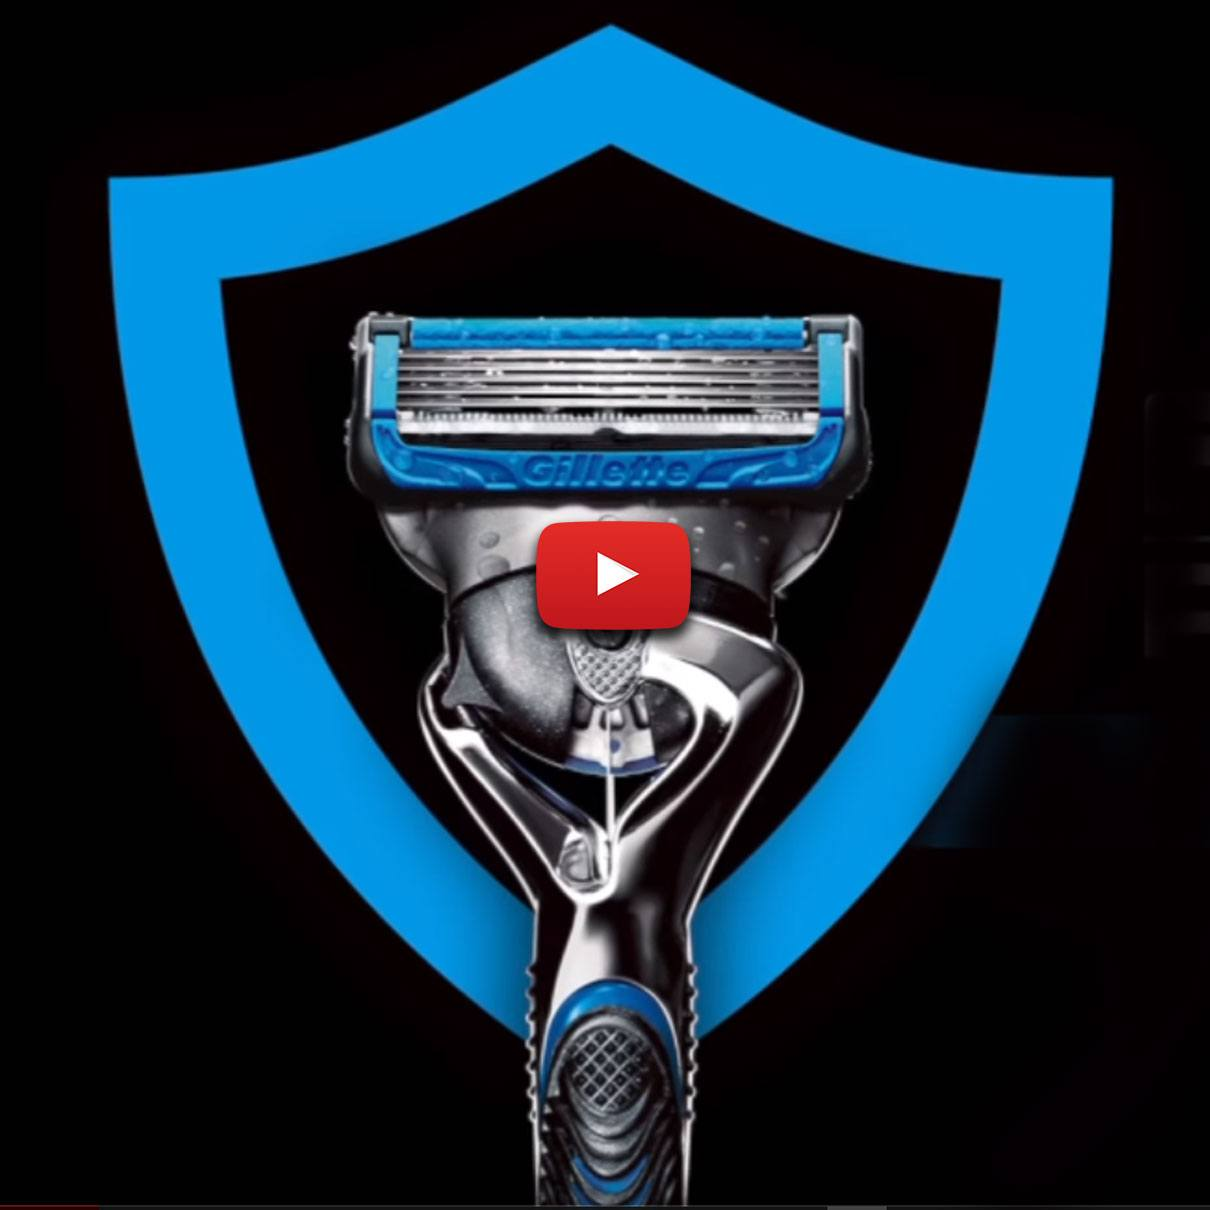 Gillette Fusion ProShield Chill Razor Blade Technology